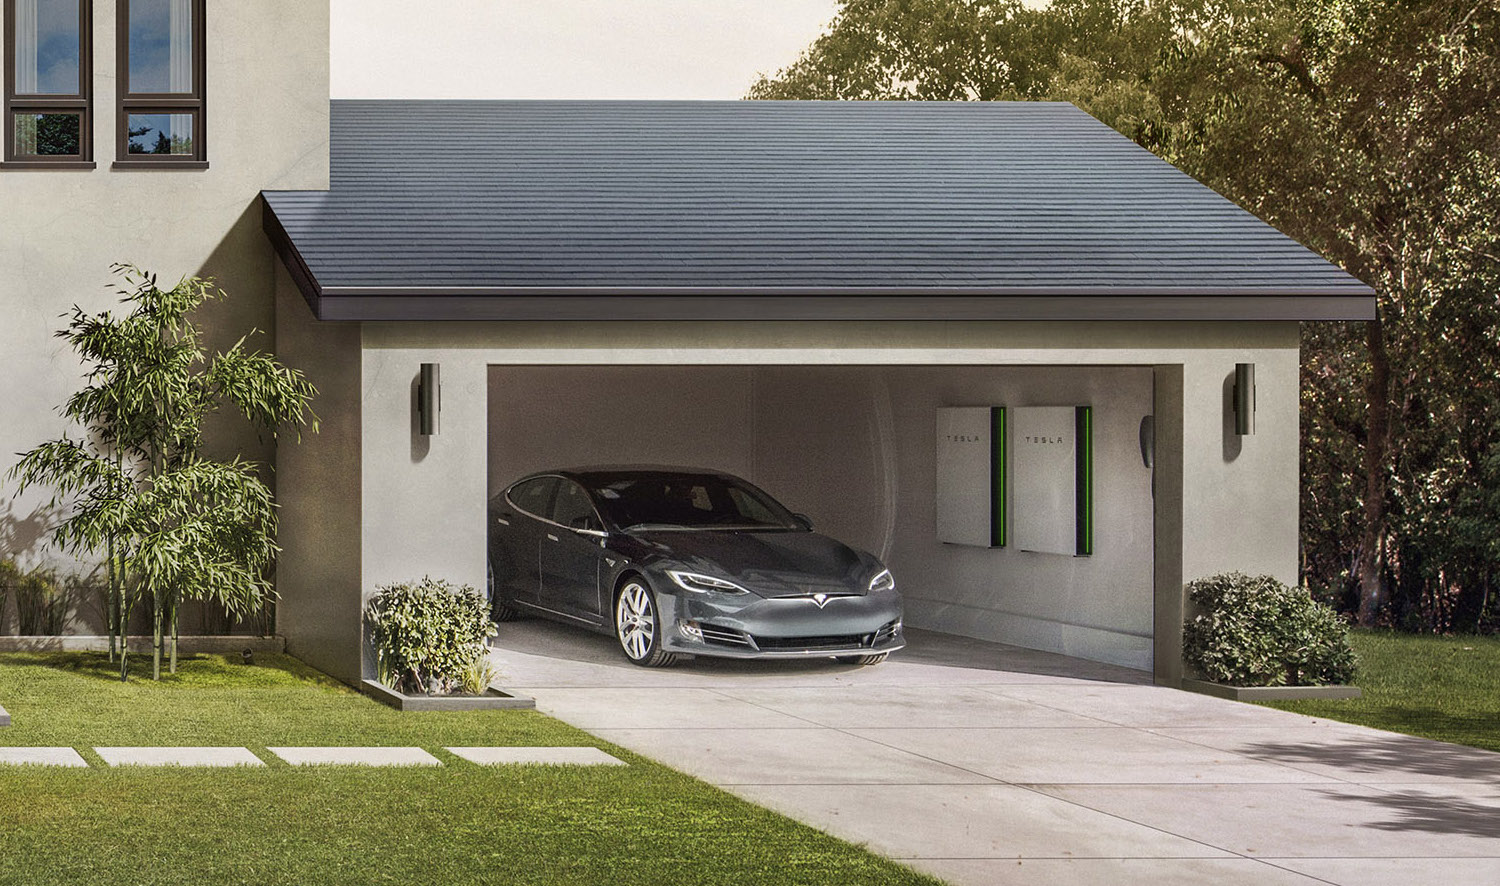 Roofing Industry Keeps Close Watch On Tesla Solar Roof As